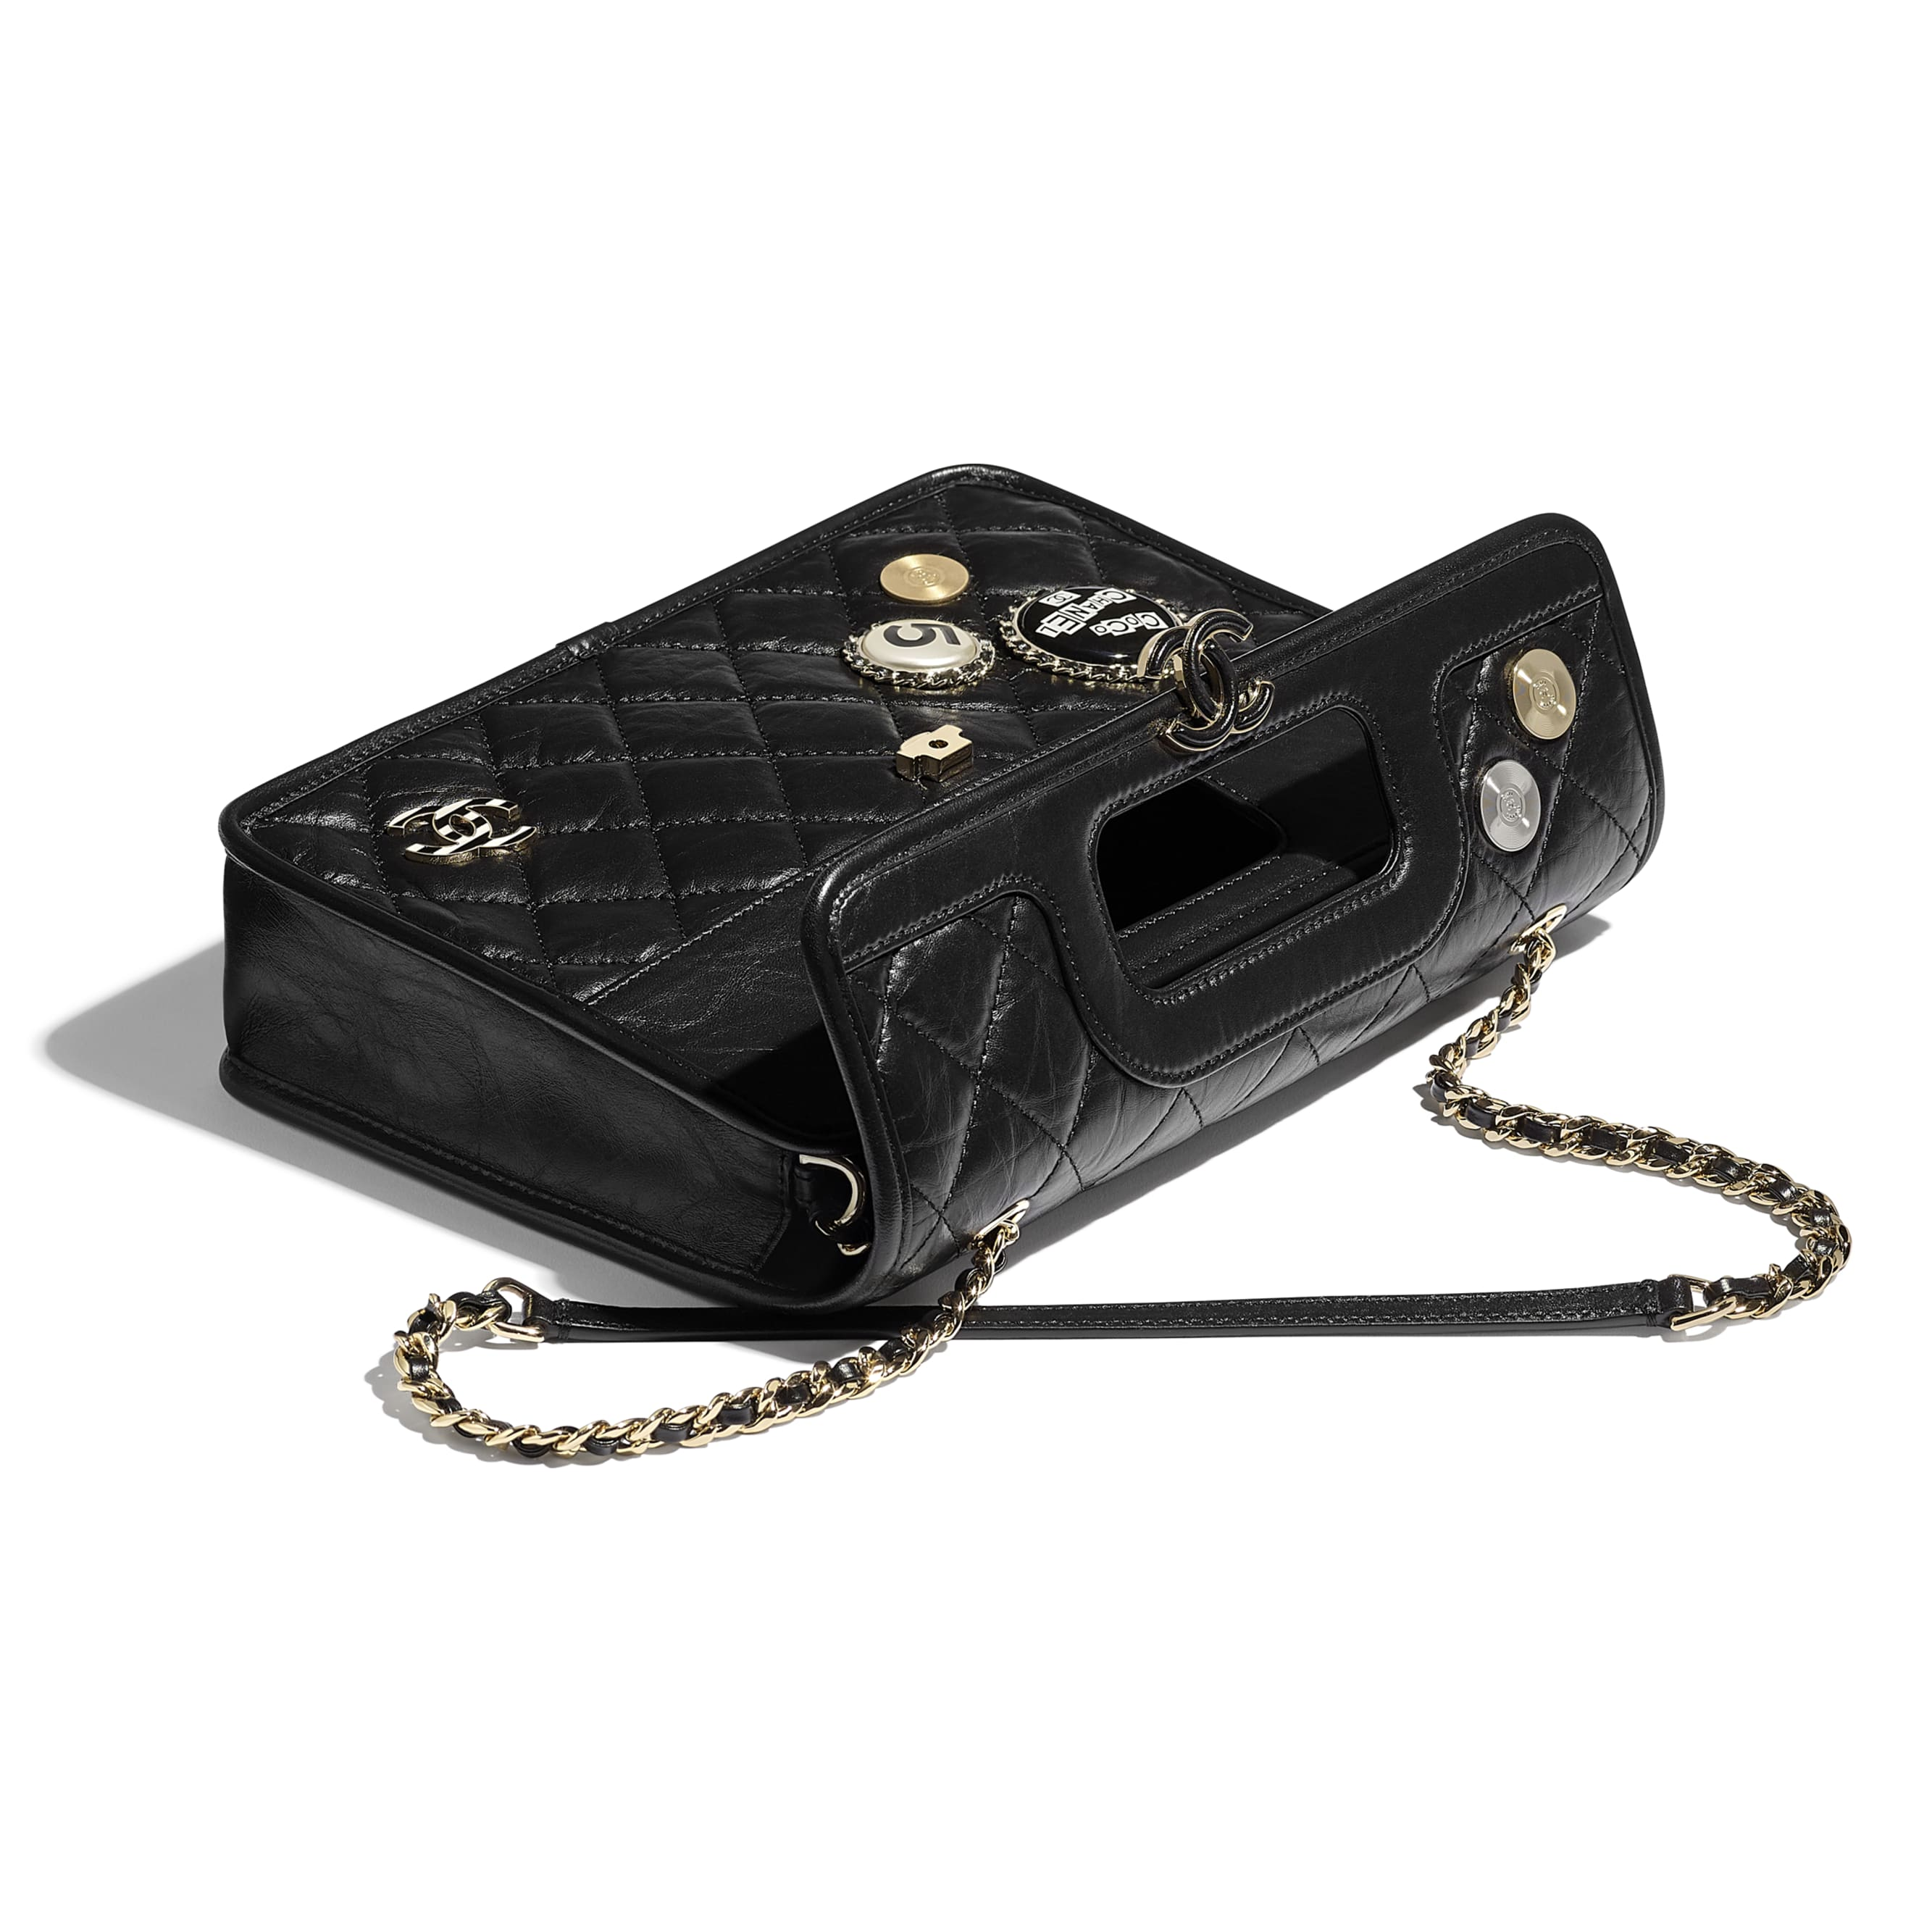 Flap Bag - Black - Aged Calfskin, Charms & Gold Metal - CHANEL - Extra view - see standard sized version